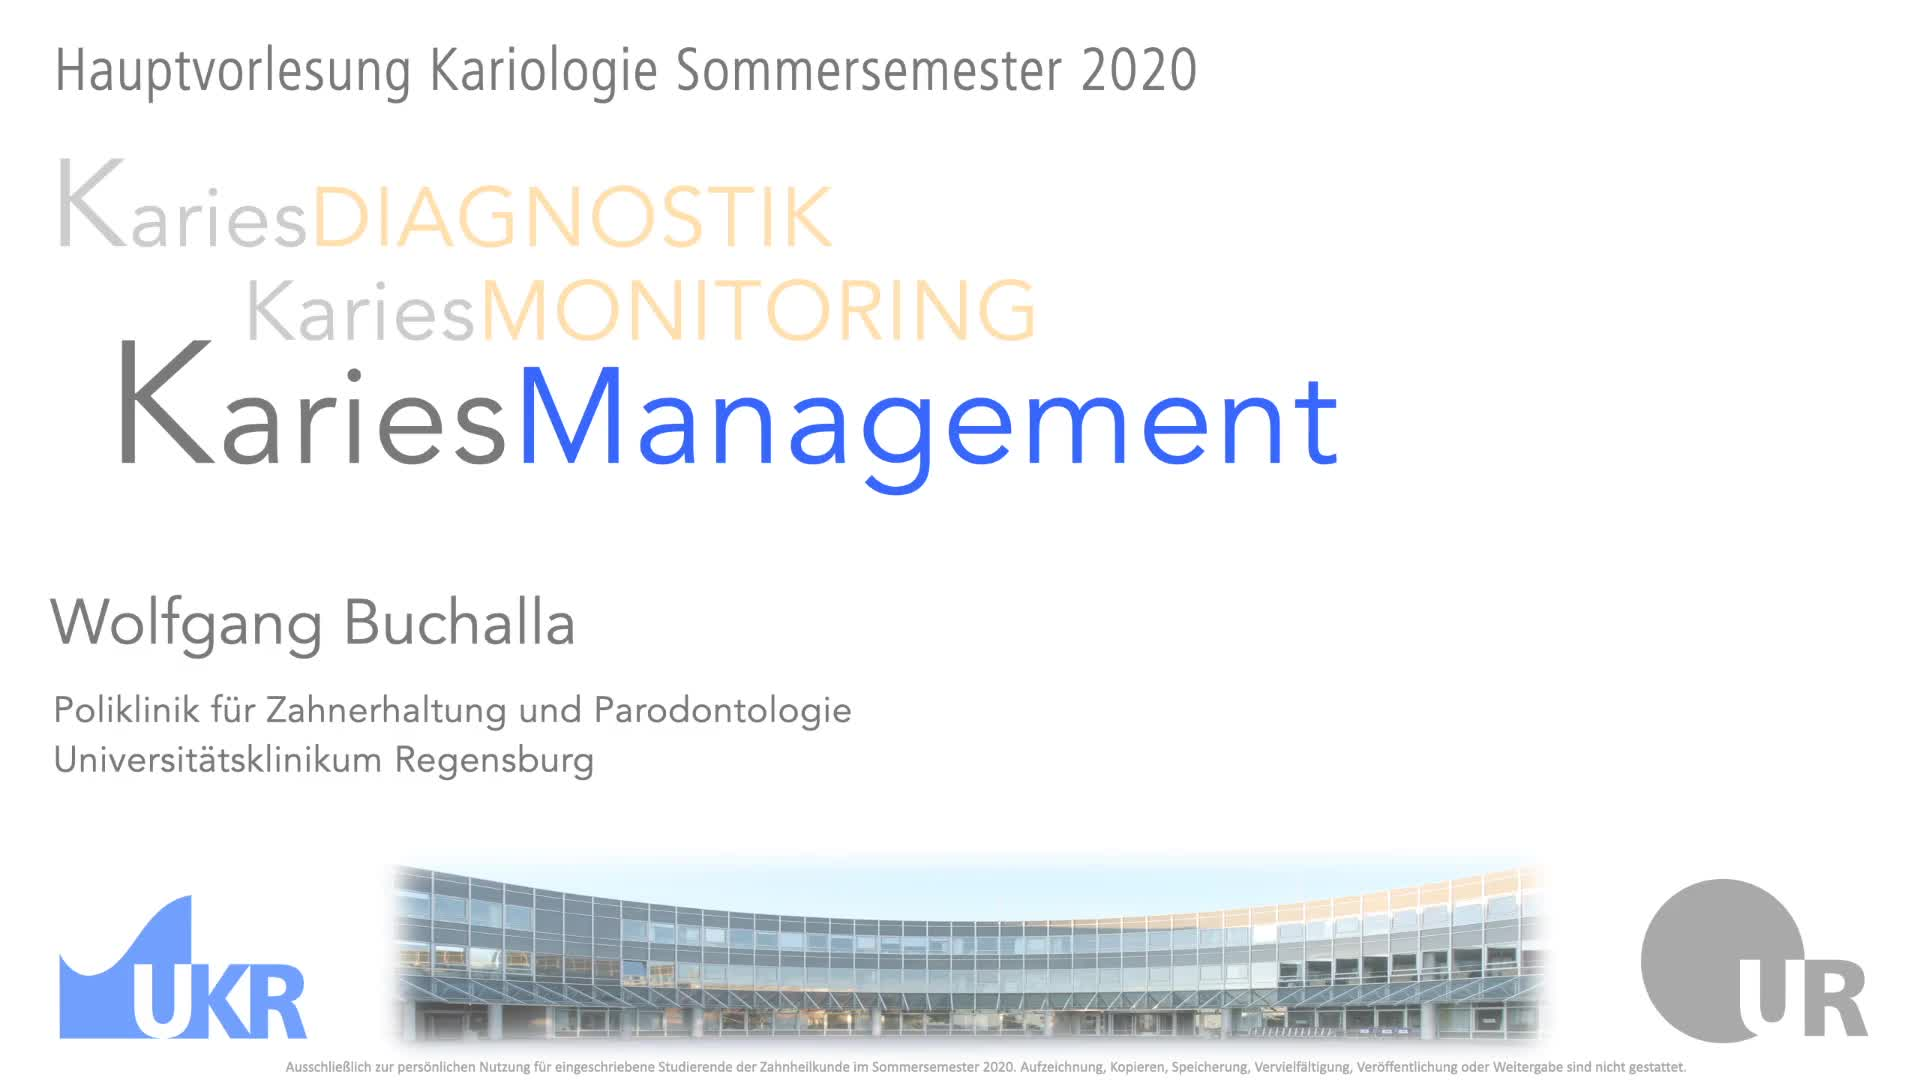 05 - 06 HV KAR Kariesmanagement 2020-05